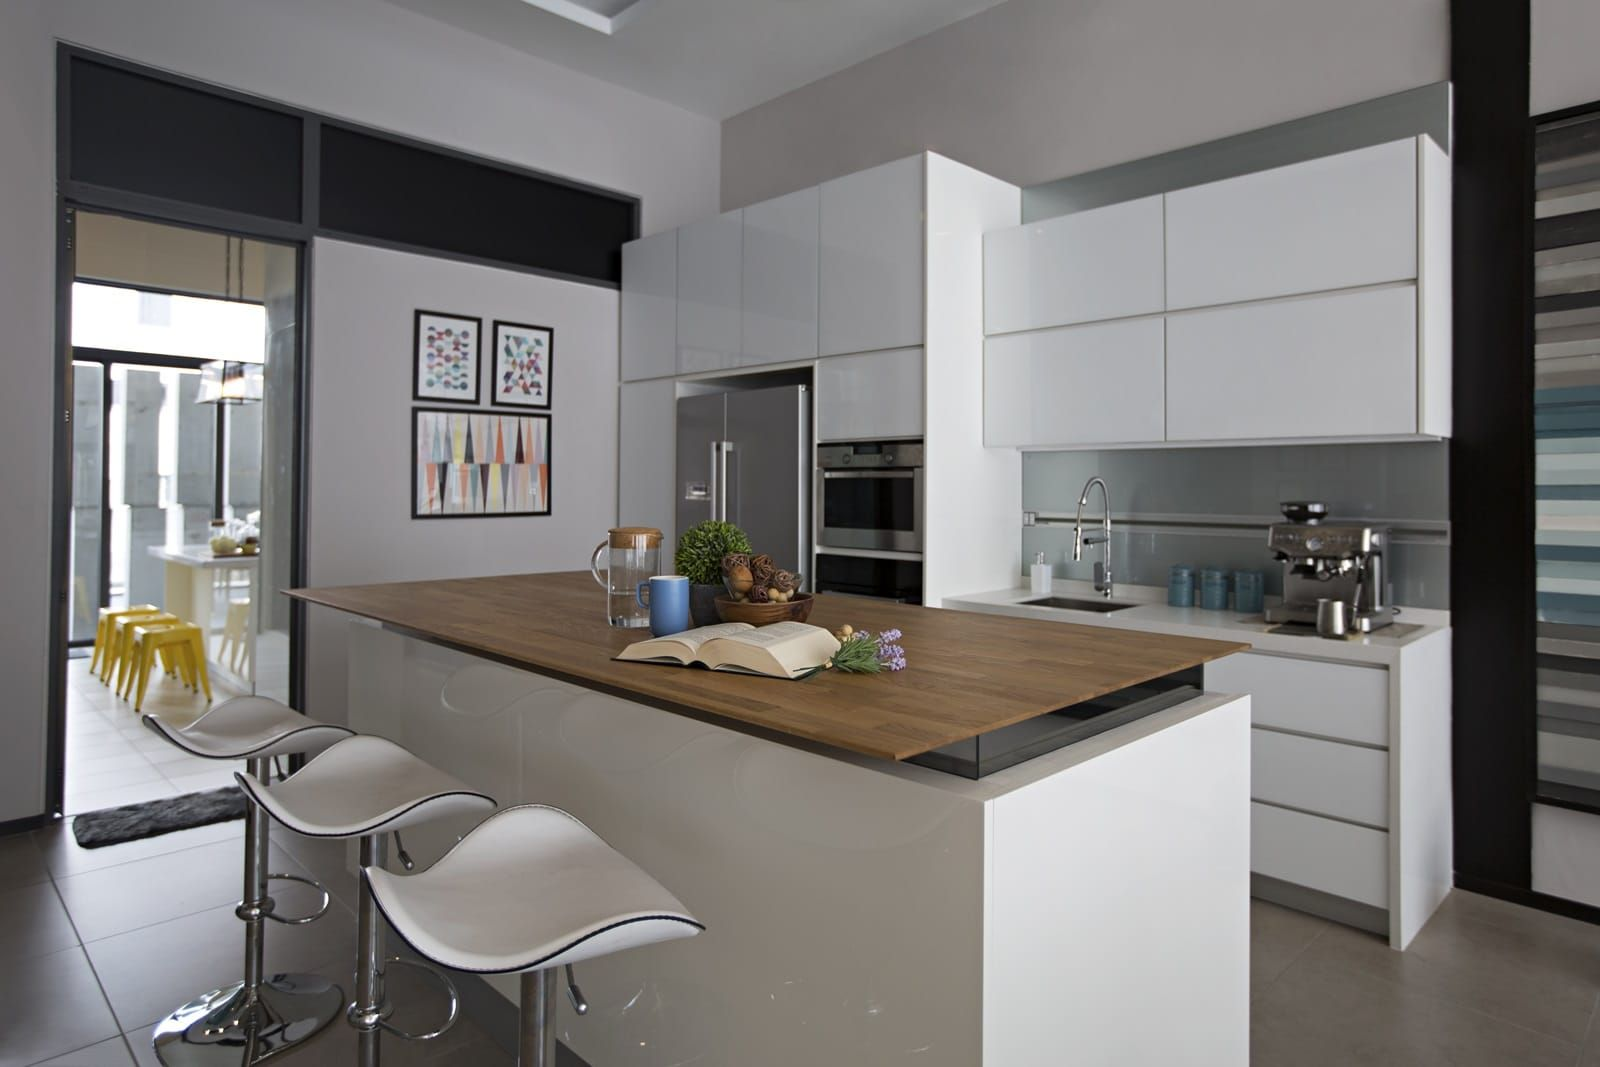 Modern Terrace House Dry Kitchen And Island By Turn Design Interior.